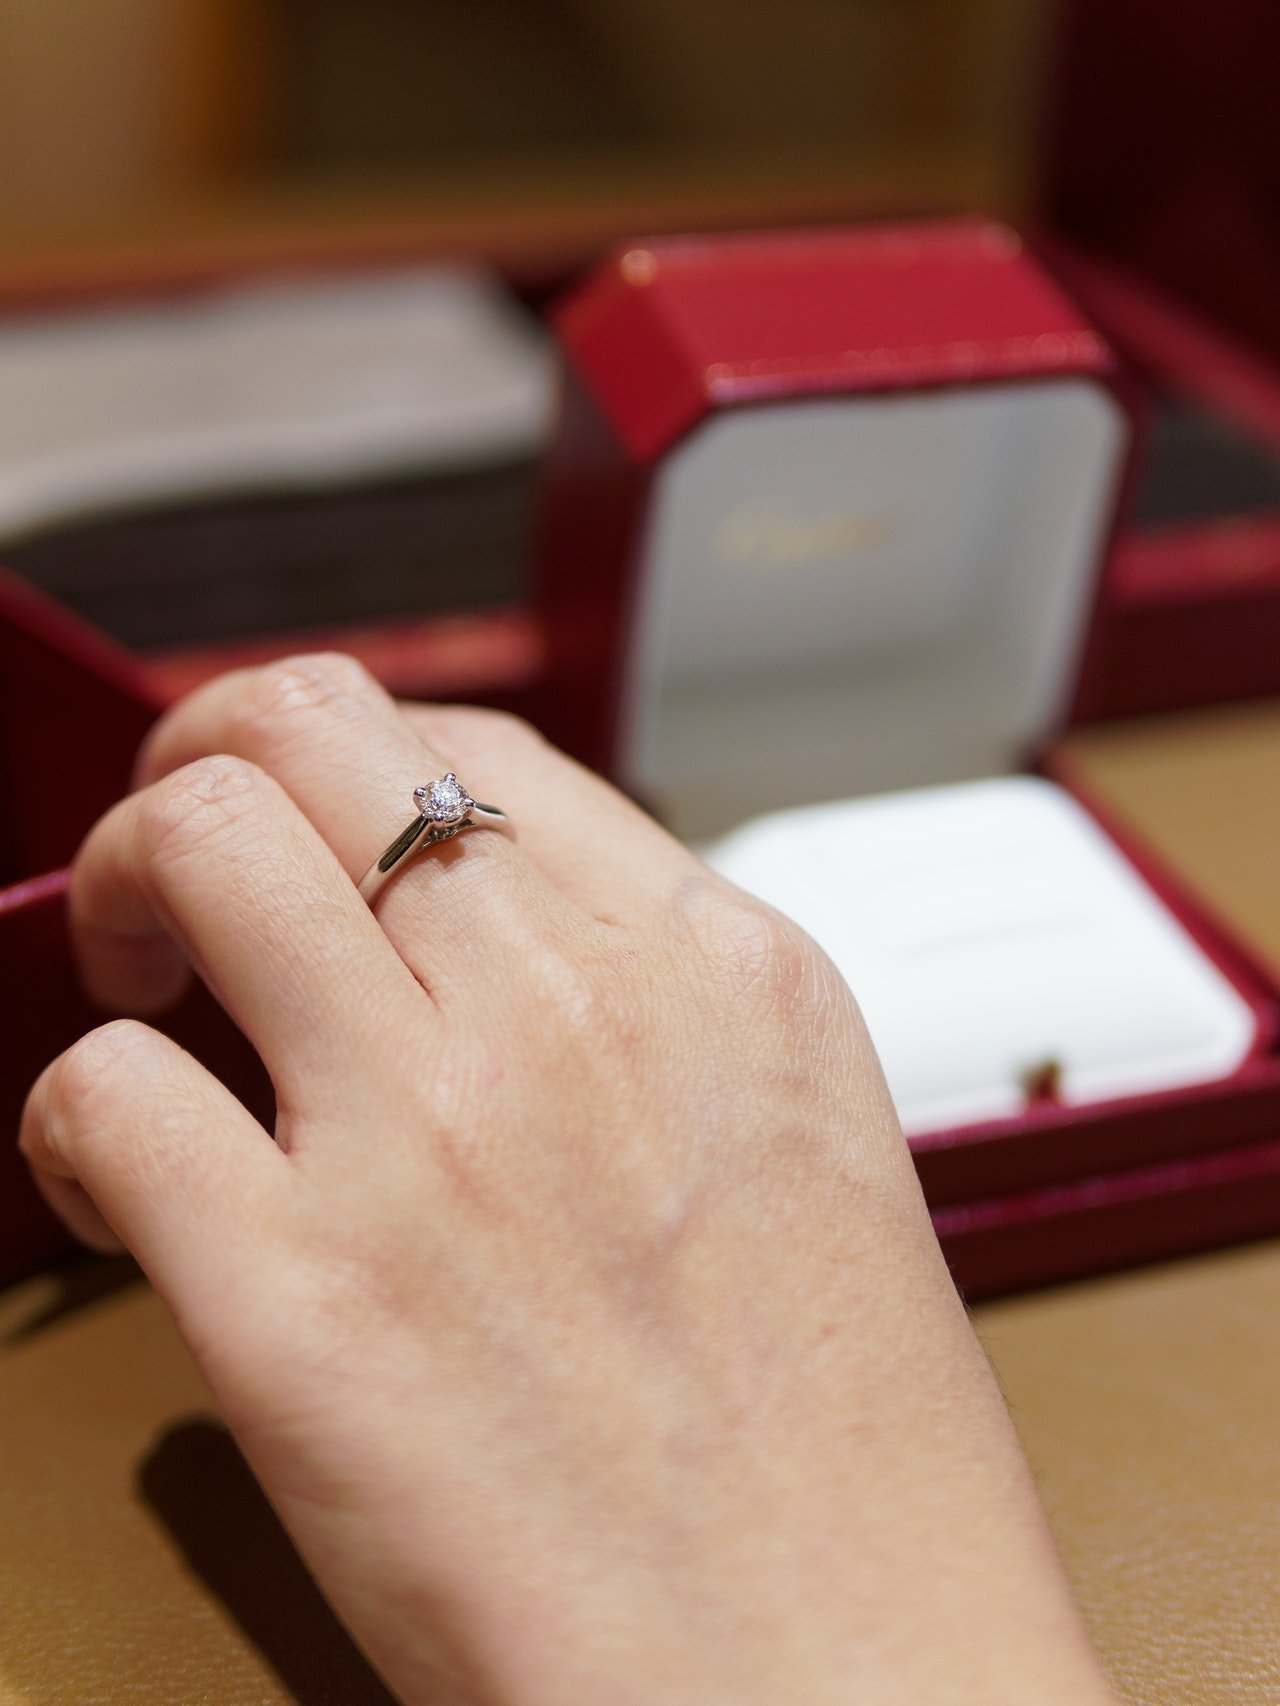 Photo of someone showing off ring   Photo: Pexels